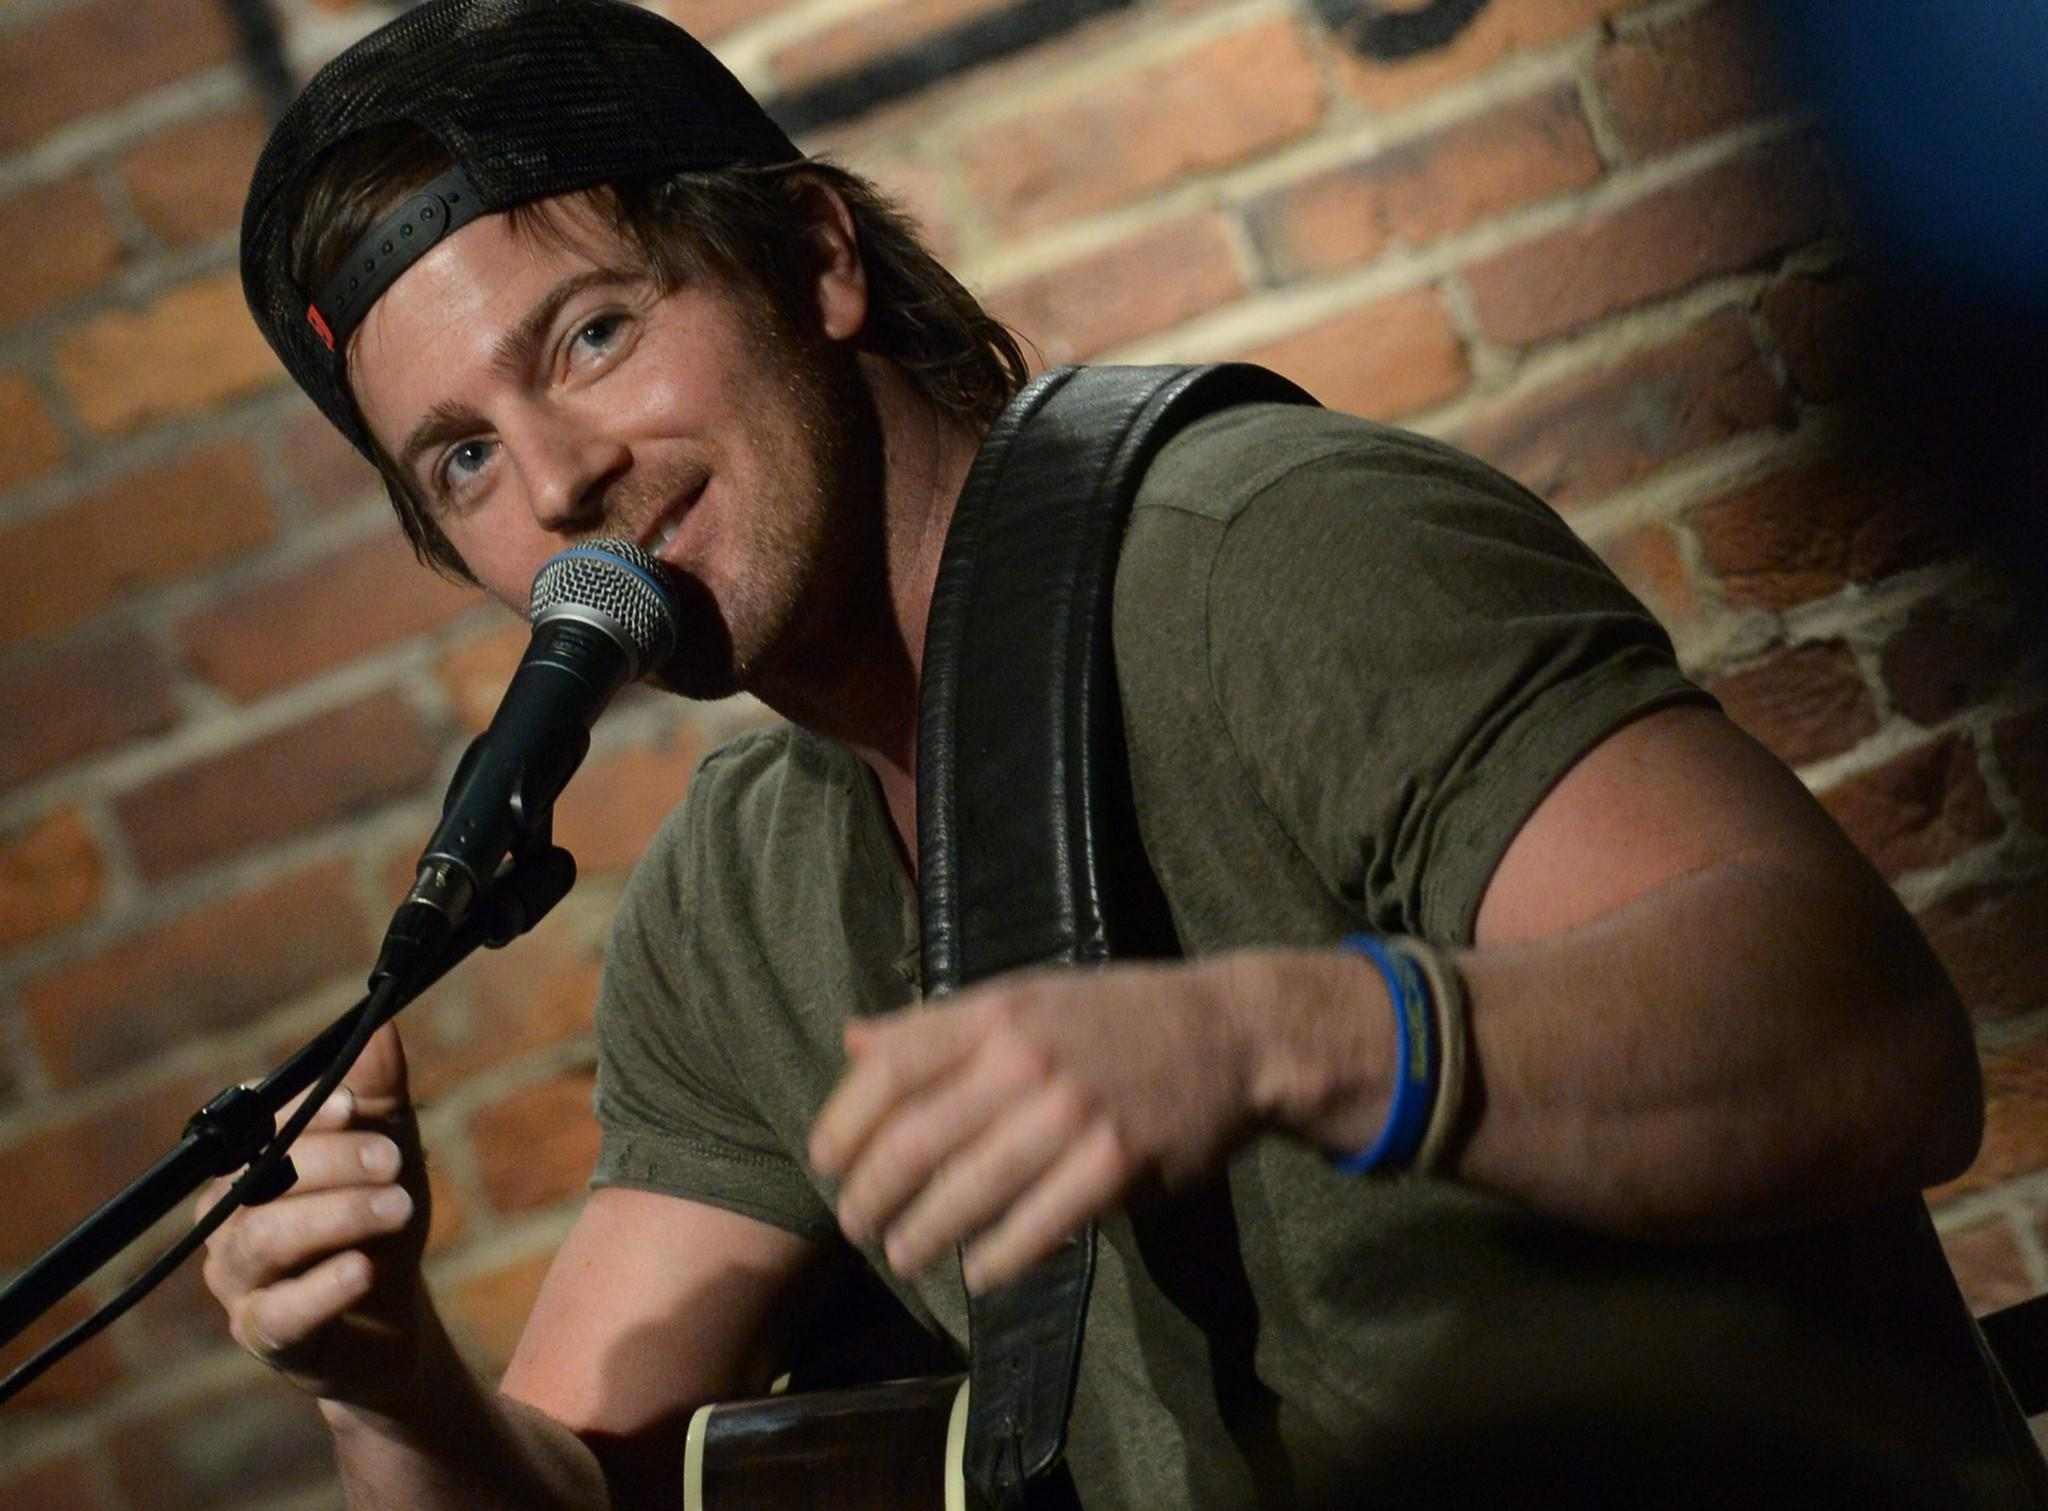 Kip Moore said his second album will be released on April 29.